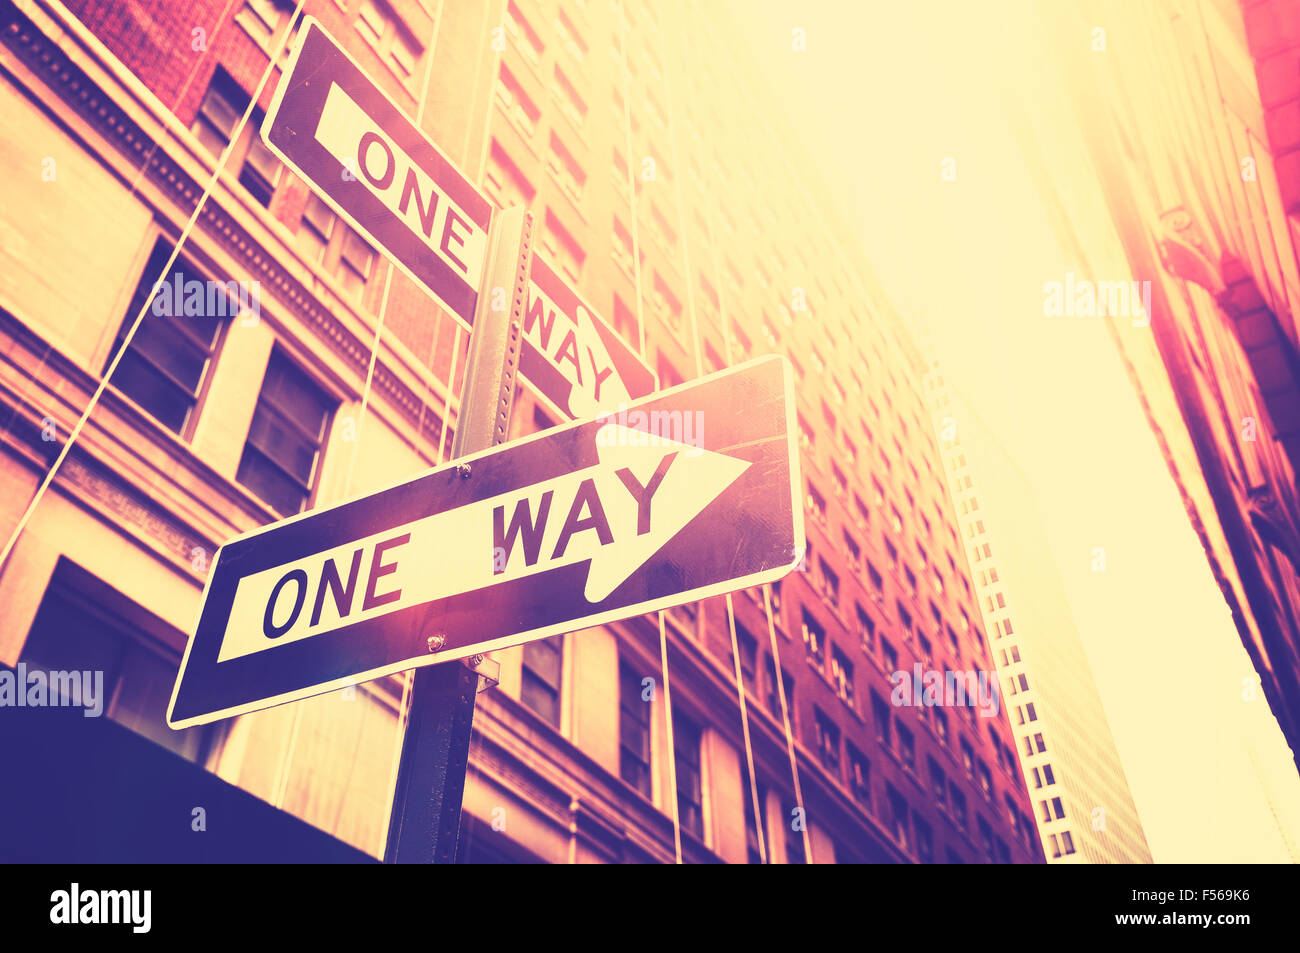 Vintage-Stil Foto desjenigen signs Weg in Manhattan, New York, USA. Stockbild